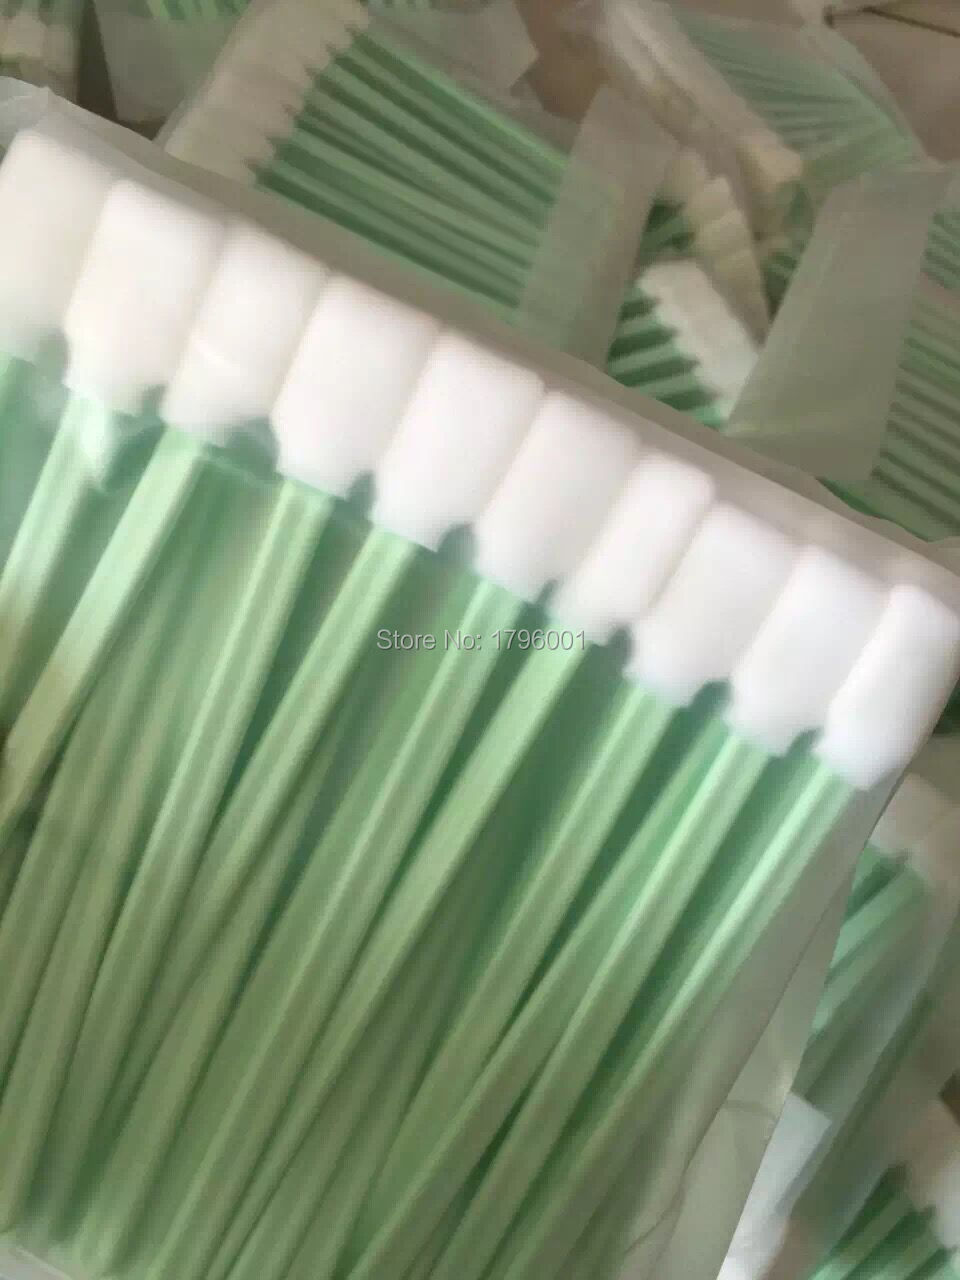 200 pcs Solvent Cleaning swabs Sticks DX2 DX4 DX5 DTG Print Head Cleaning Better than Printer